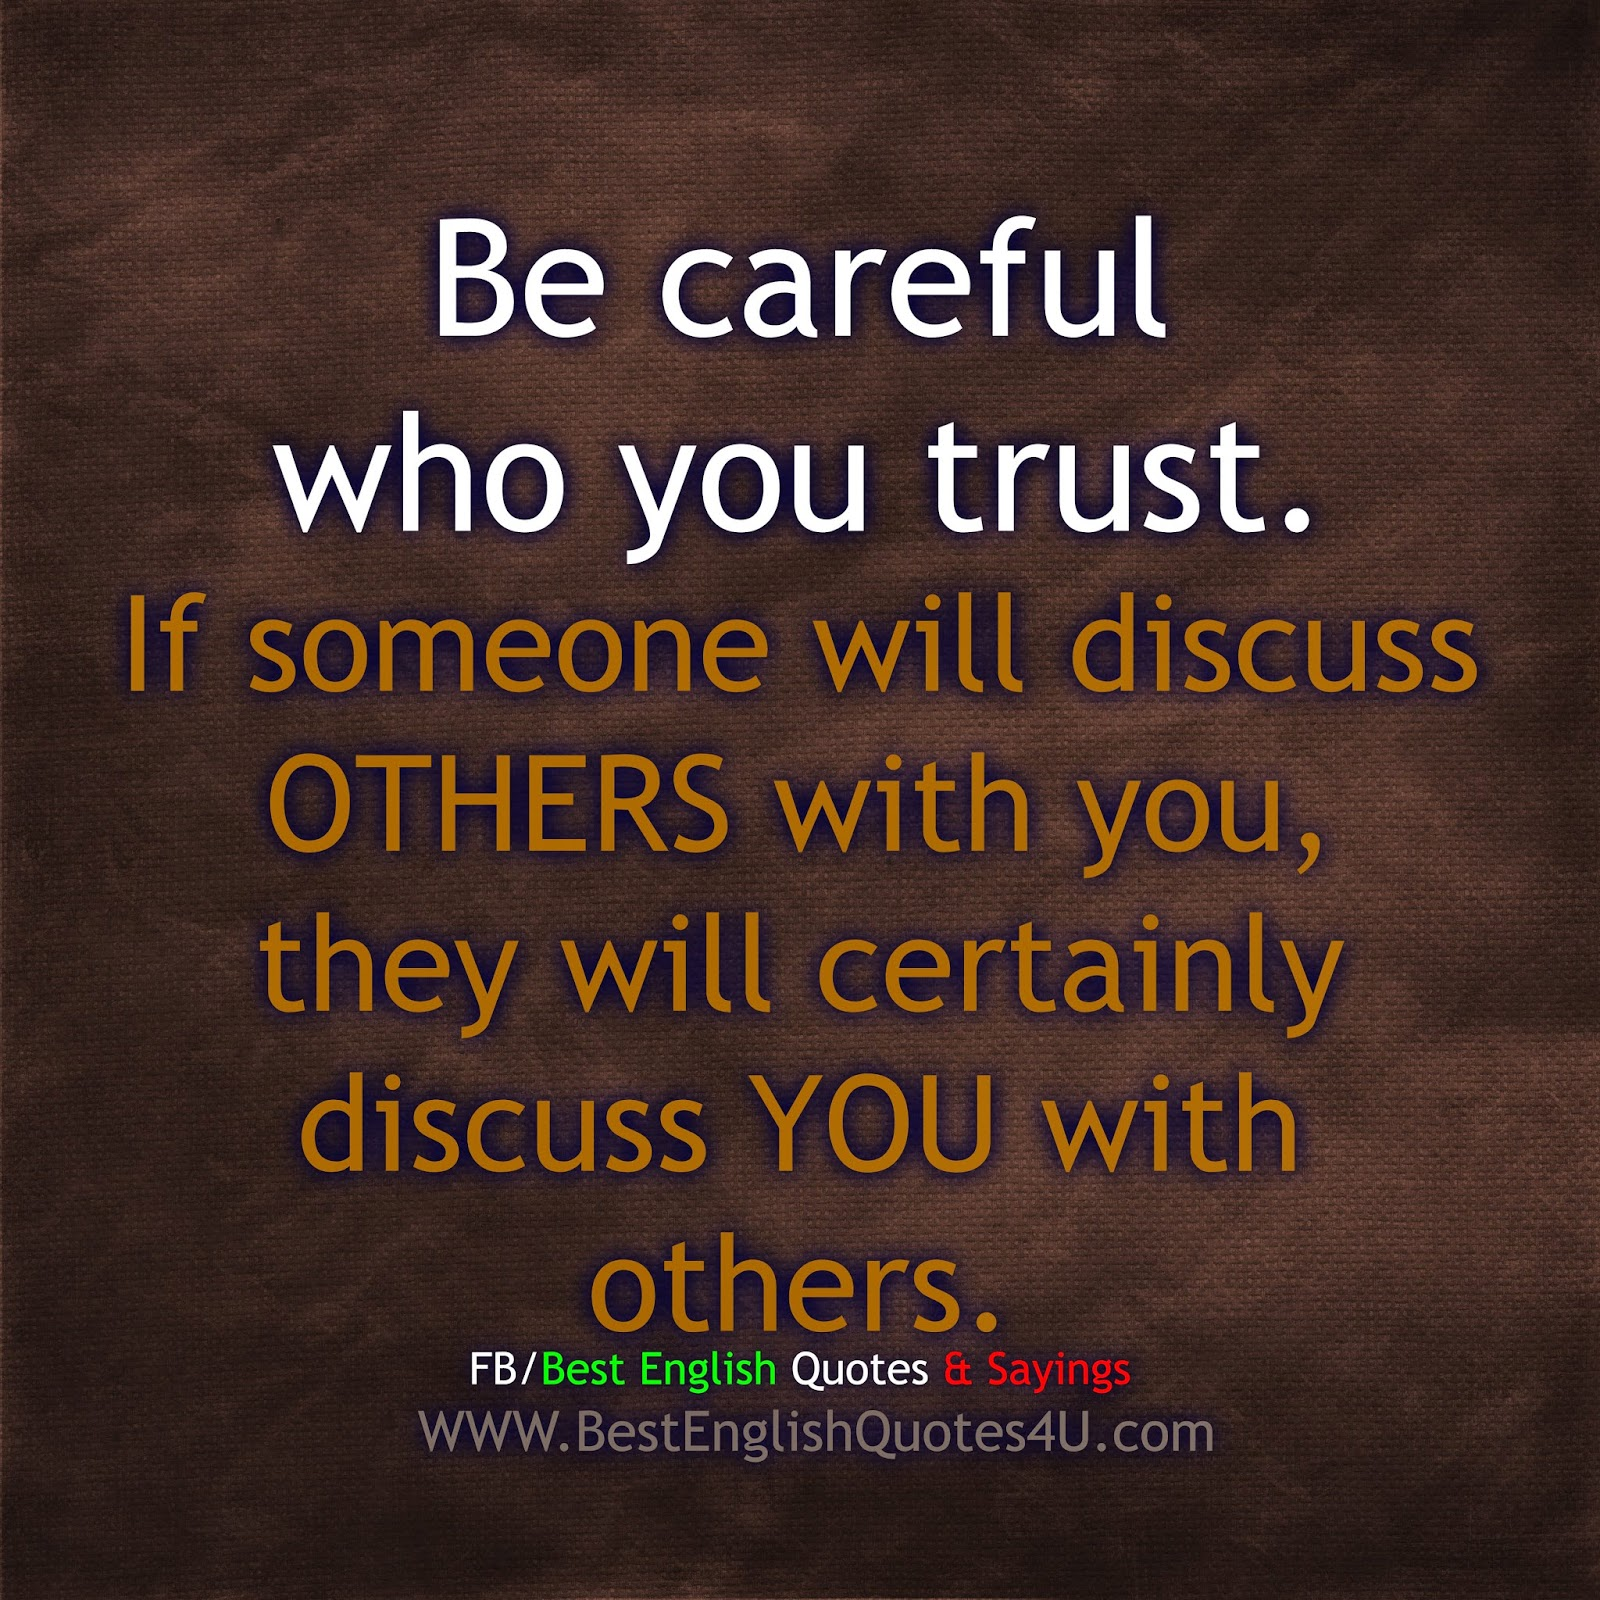 Always be careful who you trust.   Best English Quotes & Sayings